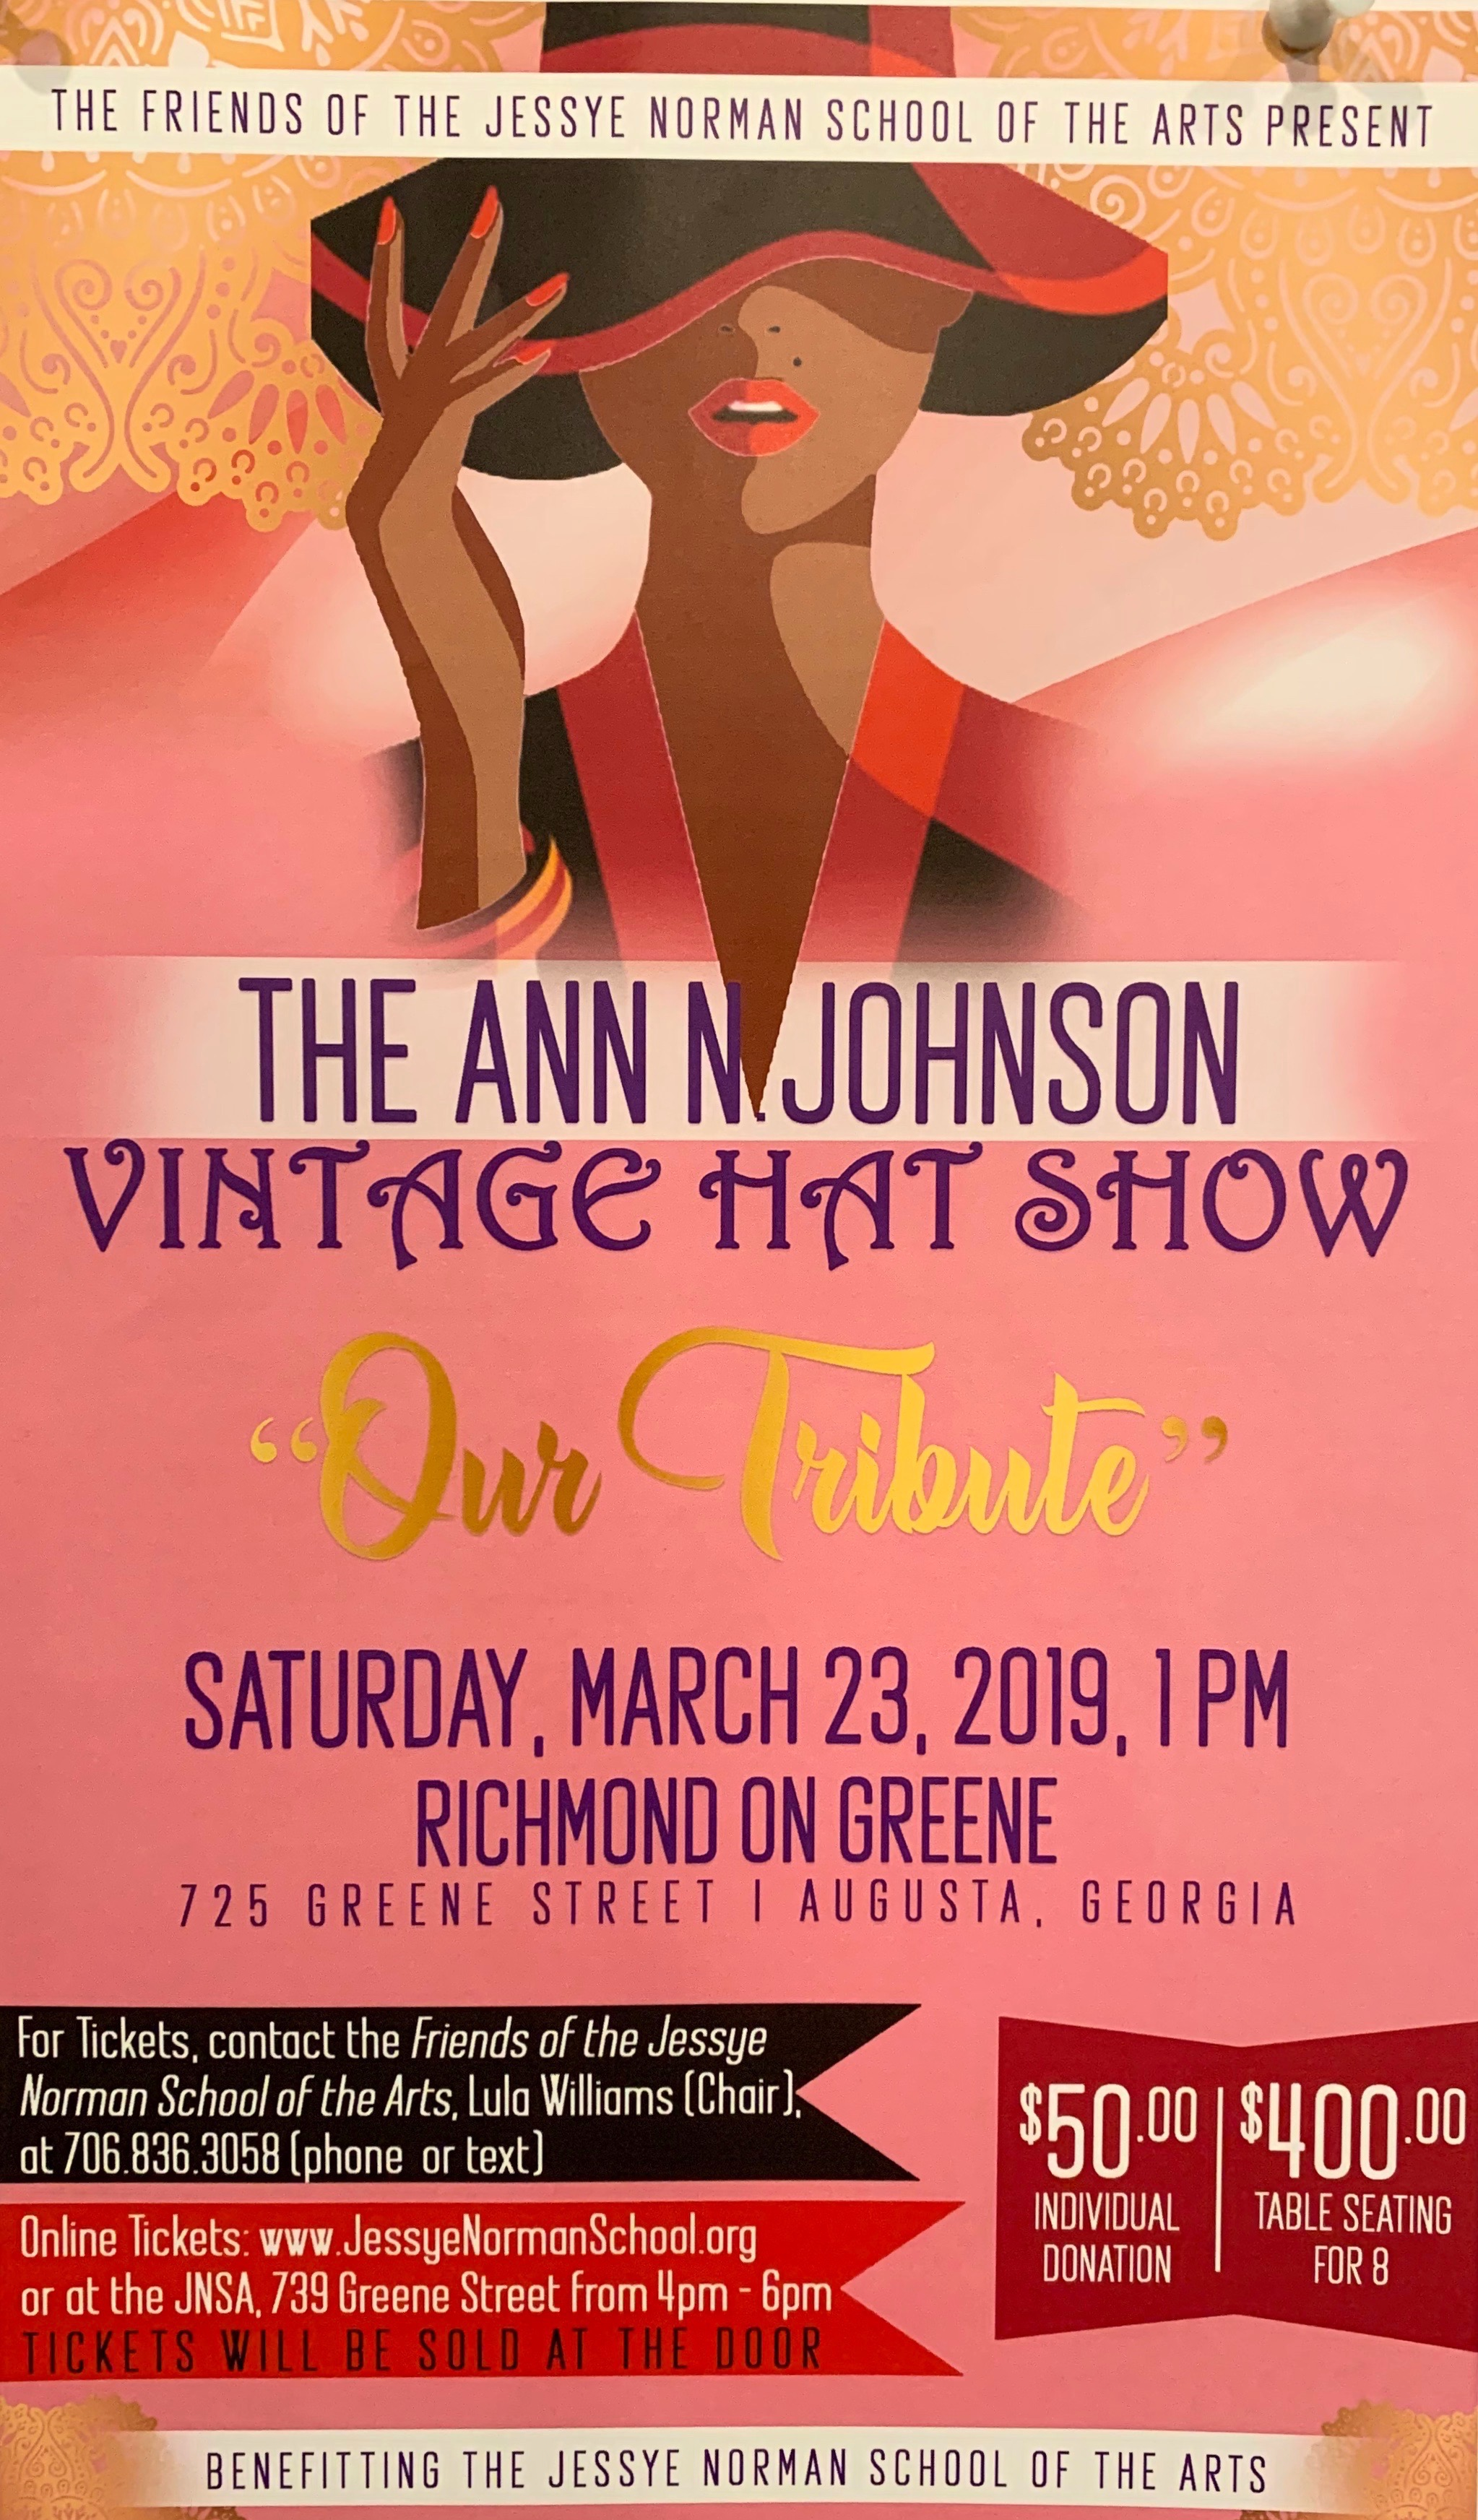 Ann Johnson Hat Show